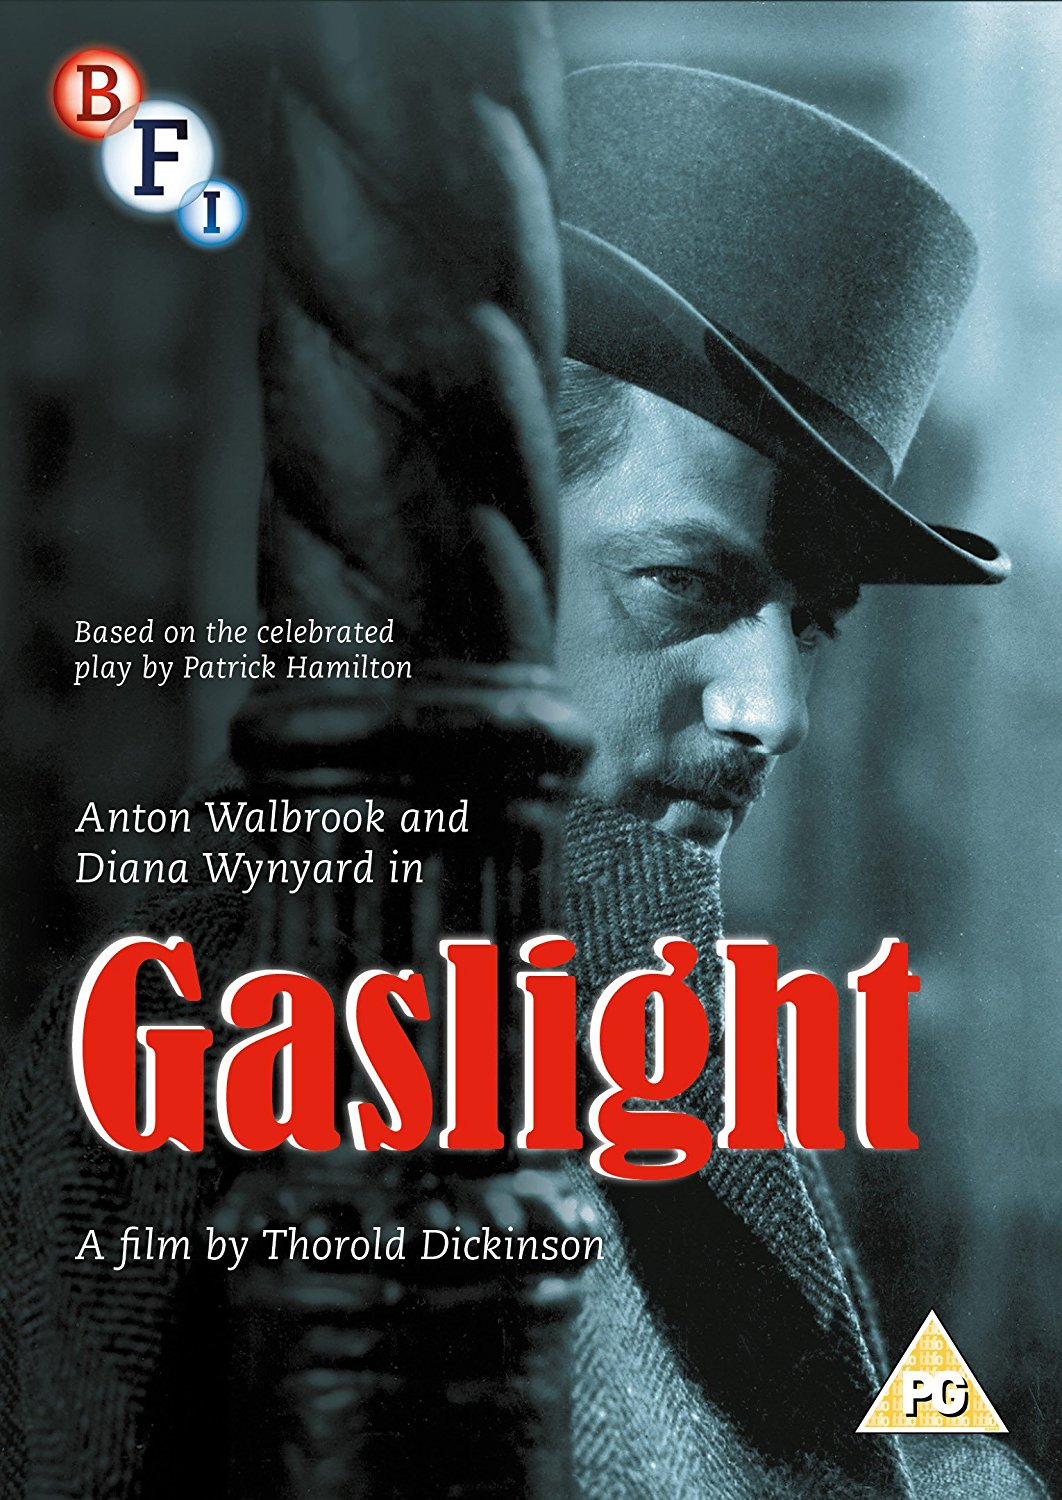 Buy Gaslight (DVD)